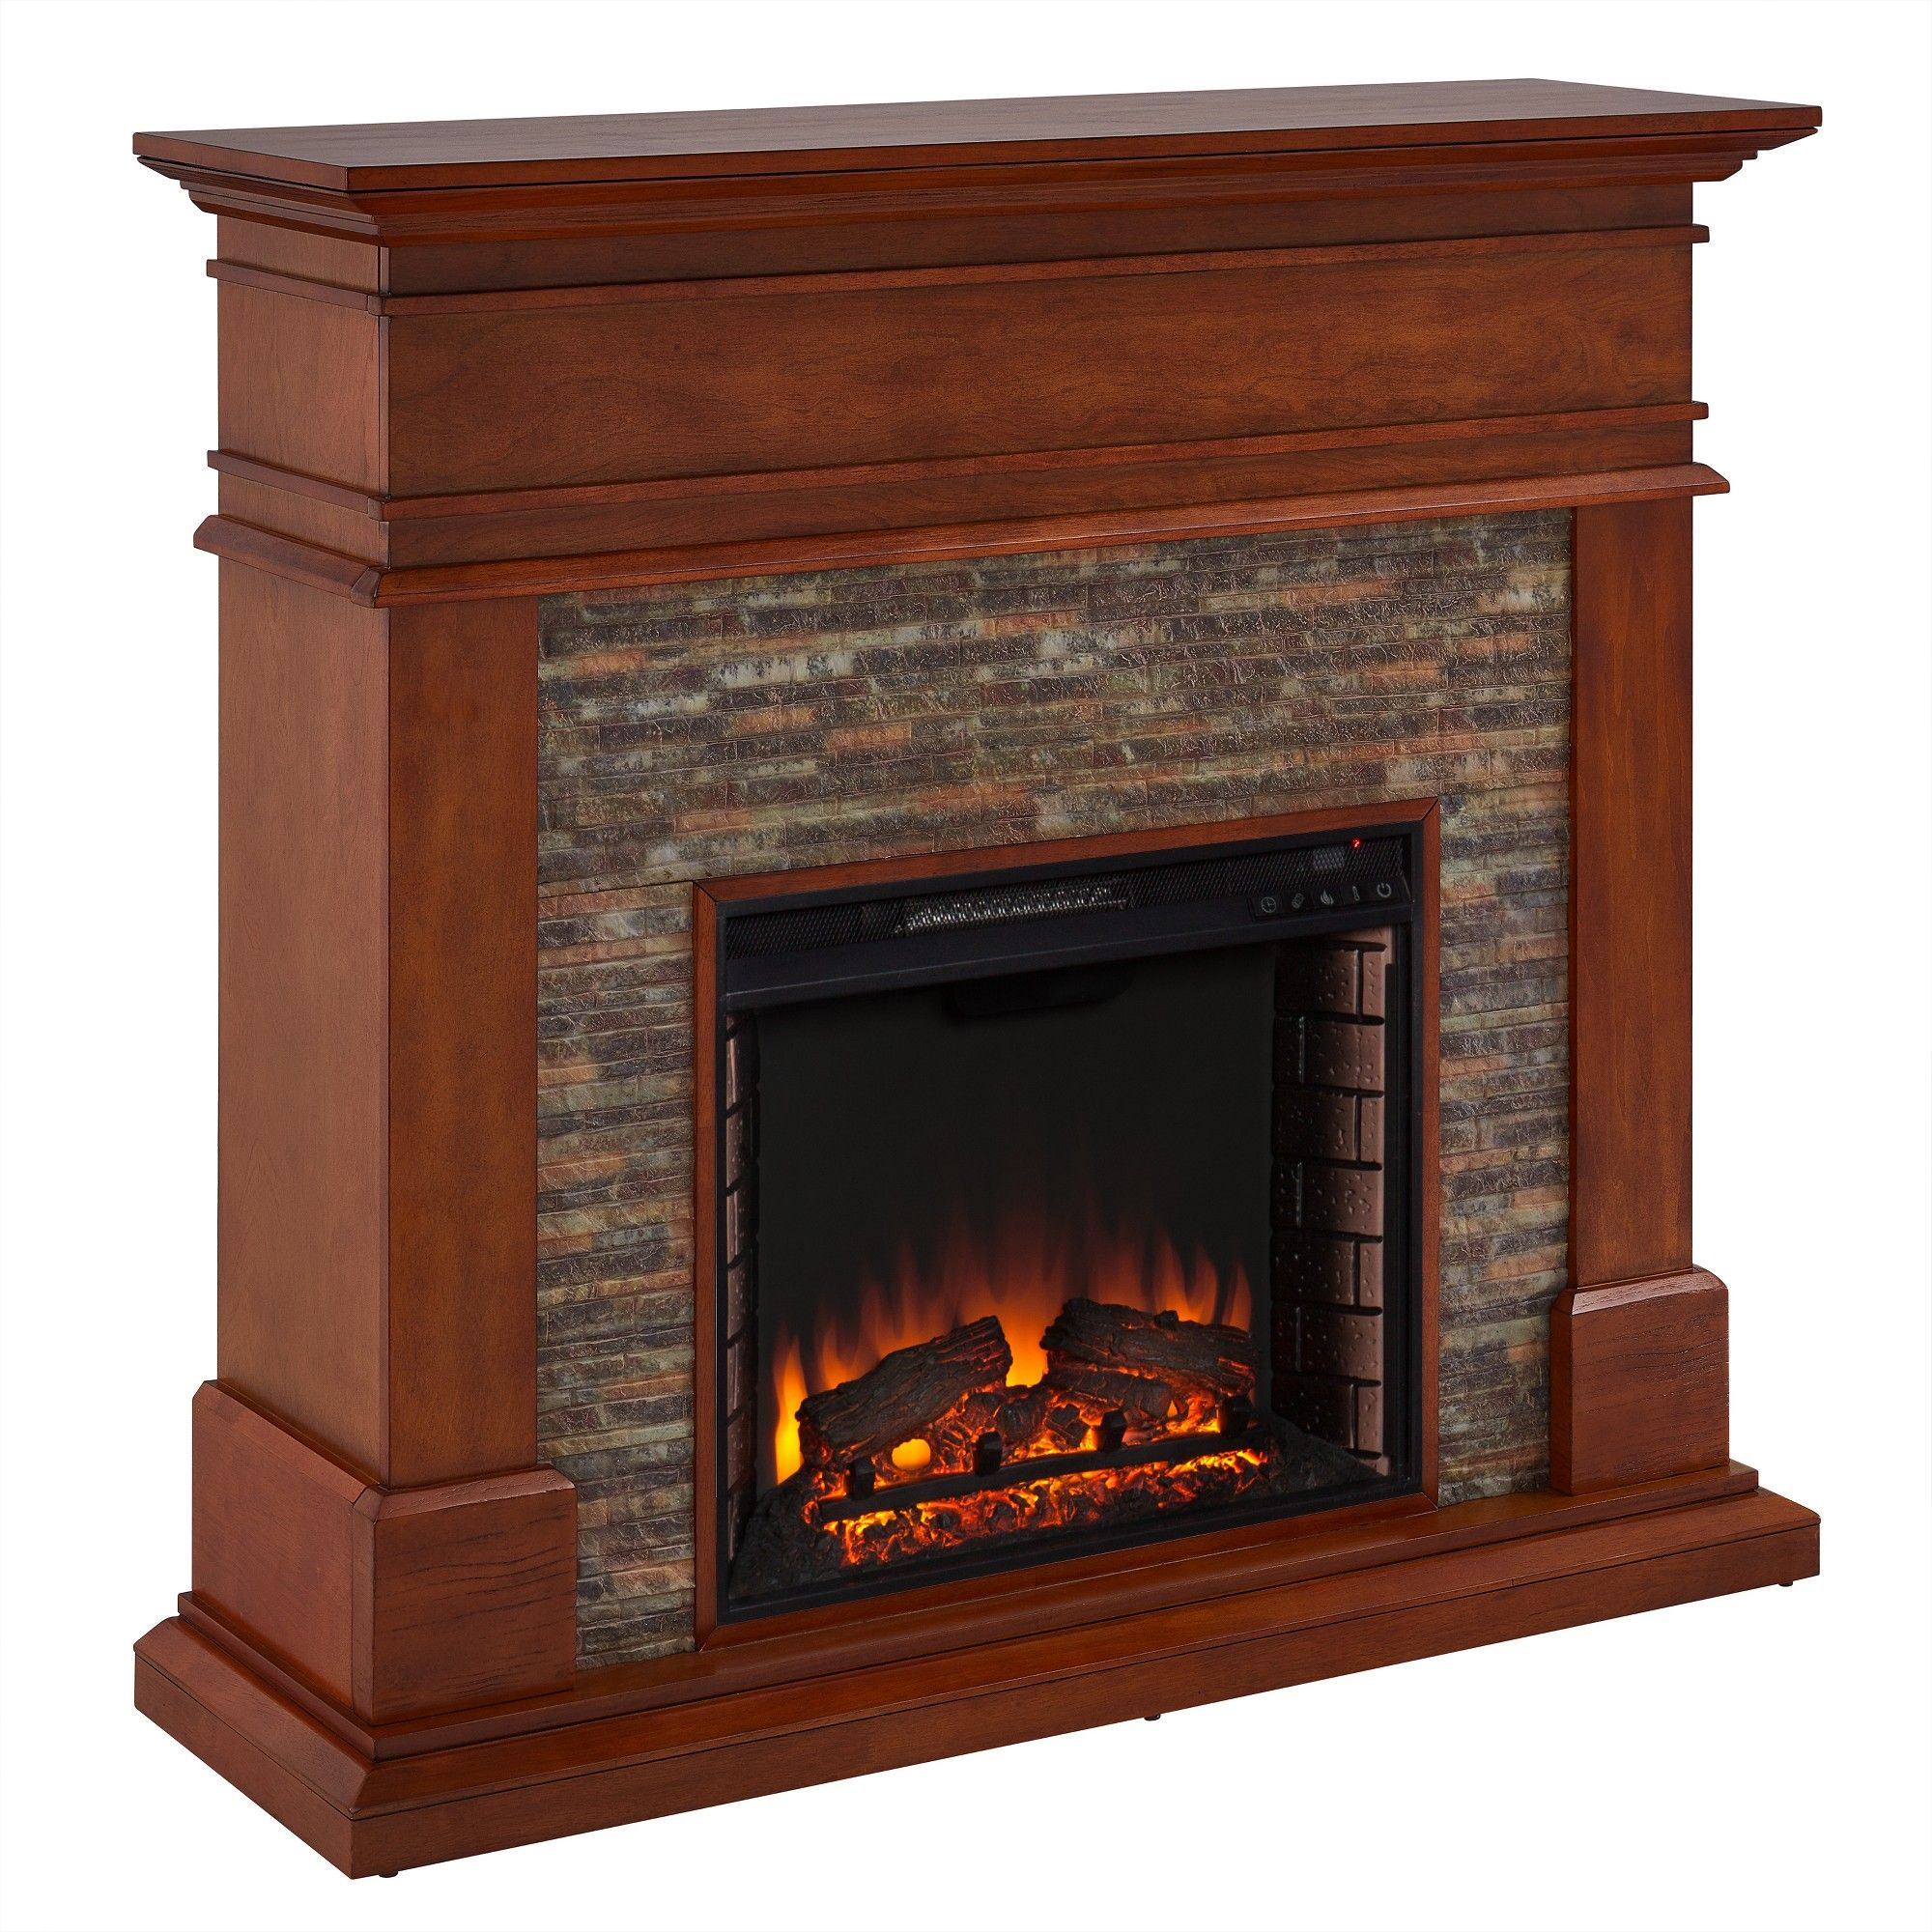 Accent Wall Faux Stone Vaulted Tv Gas Fireplace: Henton Faux Stone Fireplace Brown - Aiden Lane